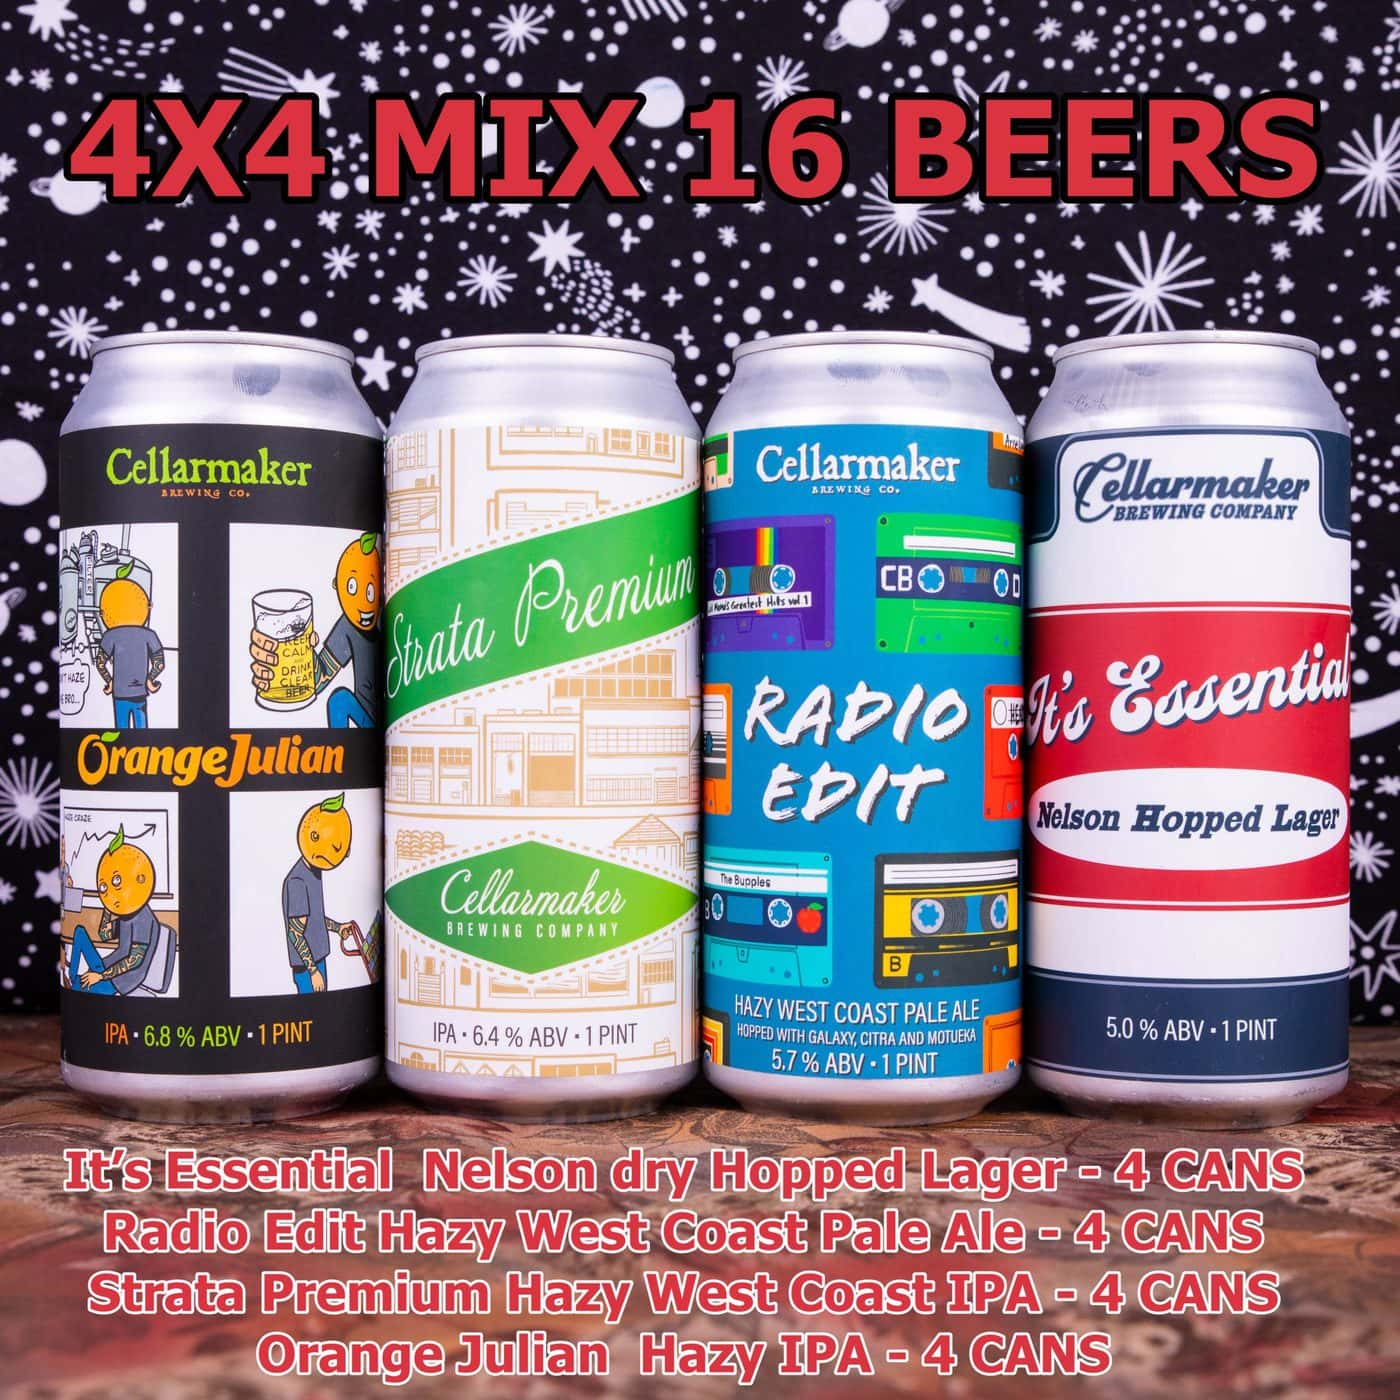 NEW 4×4 MIX 16 CANS – 4 Orange Julian IPA, 4 Strata Premium IPA, 4 Radio Edit Pale Ale And 4 It's Essential Nelson Hopped Lager ~ Shipping Out For Next Day Delivery On Tuesday 1/19*